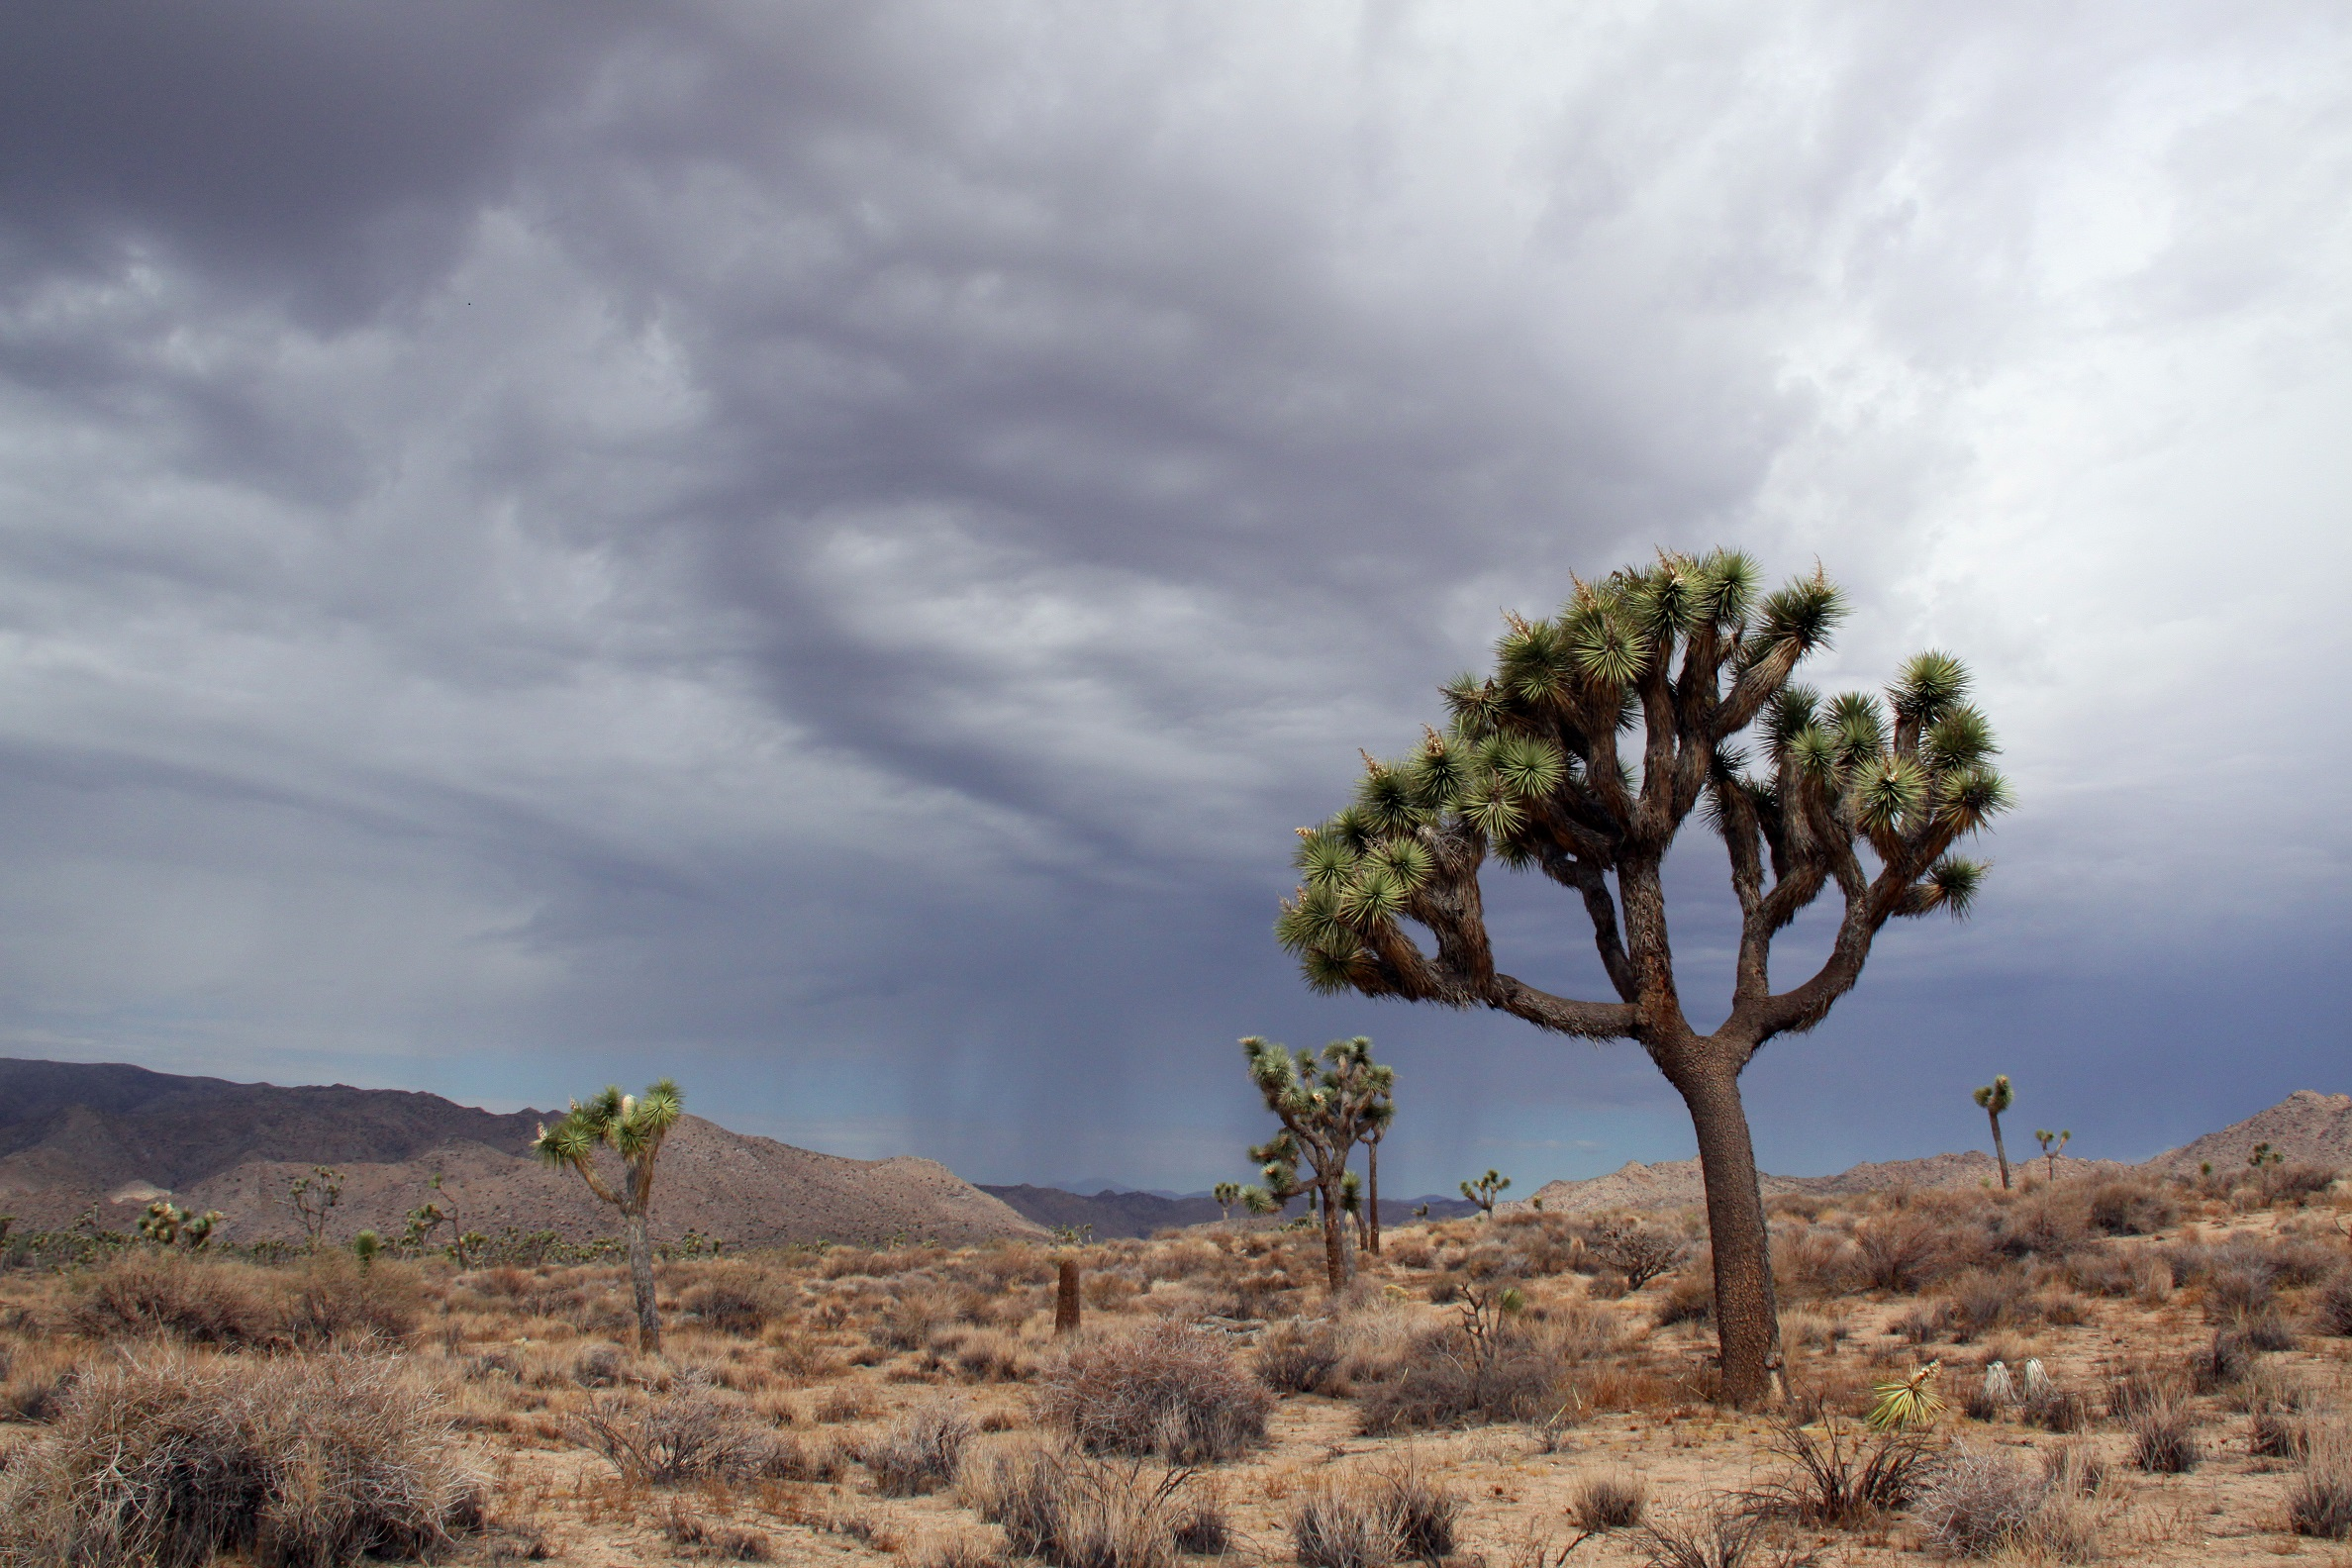 Celebrating 25 years of protecting California's deserts